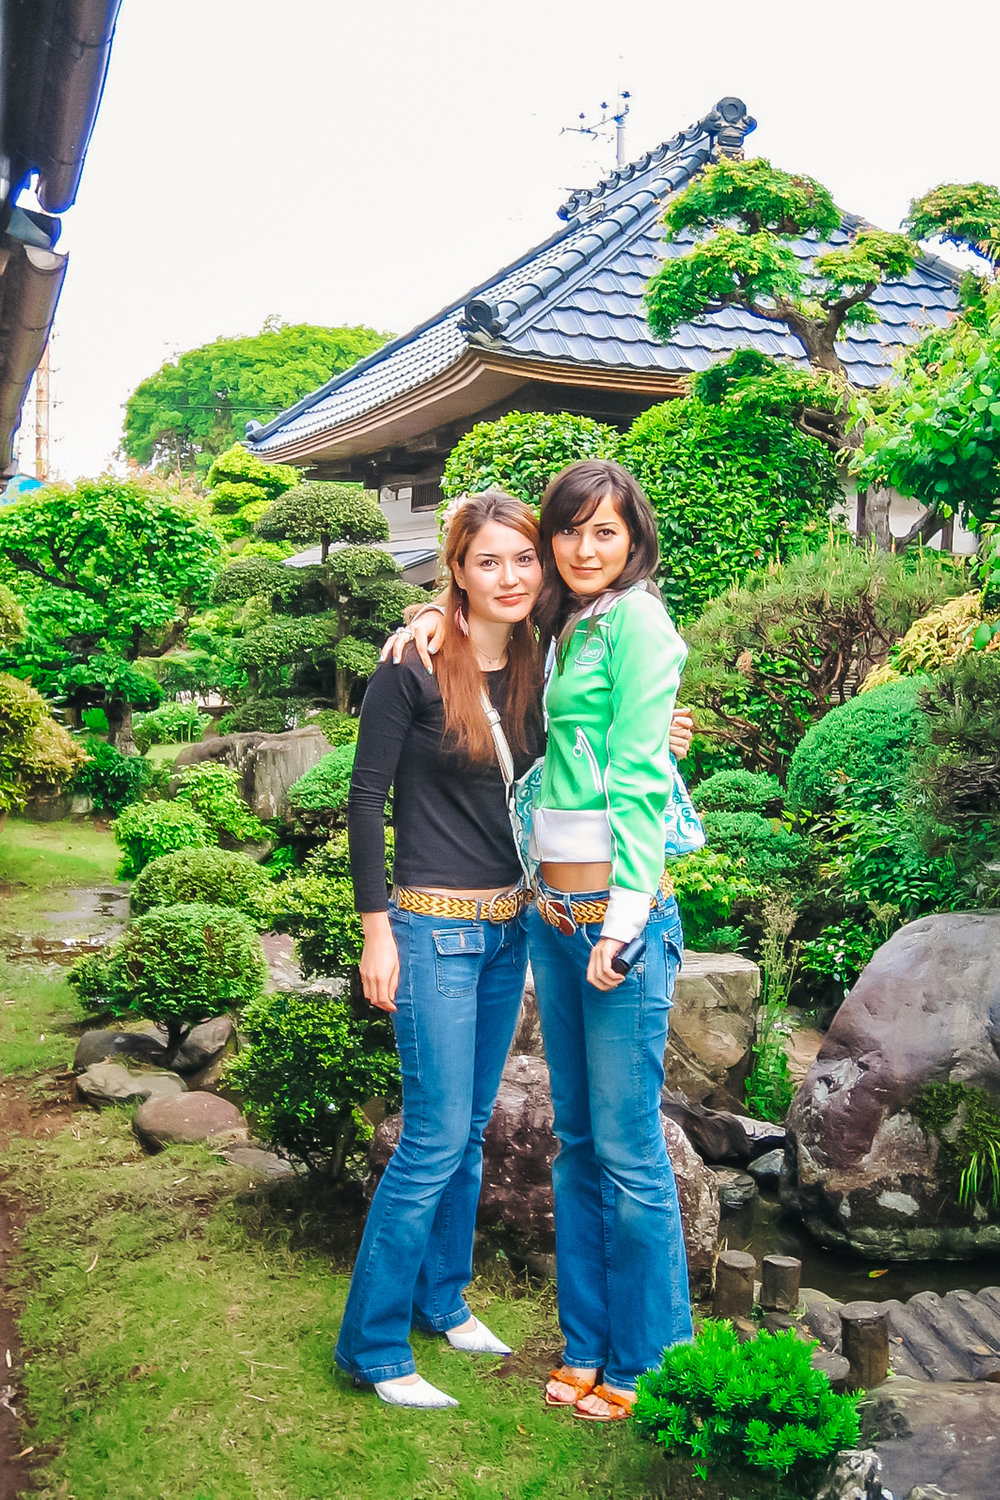 years ago with my little sister in Our Cousin's Grandma's Japanese garden